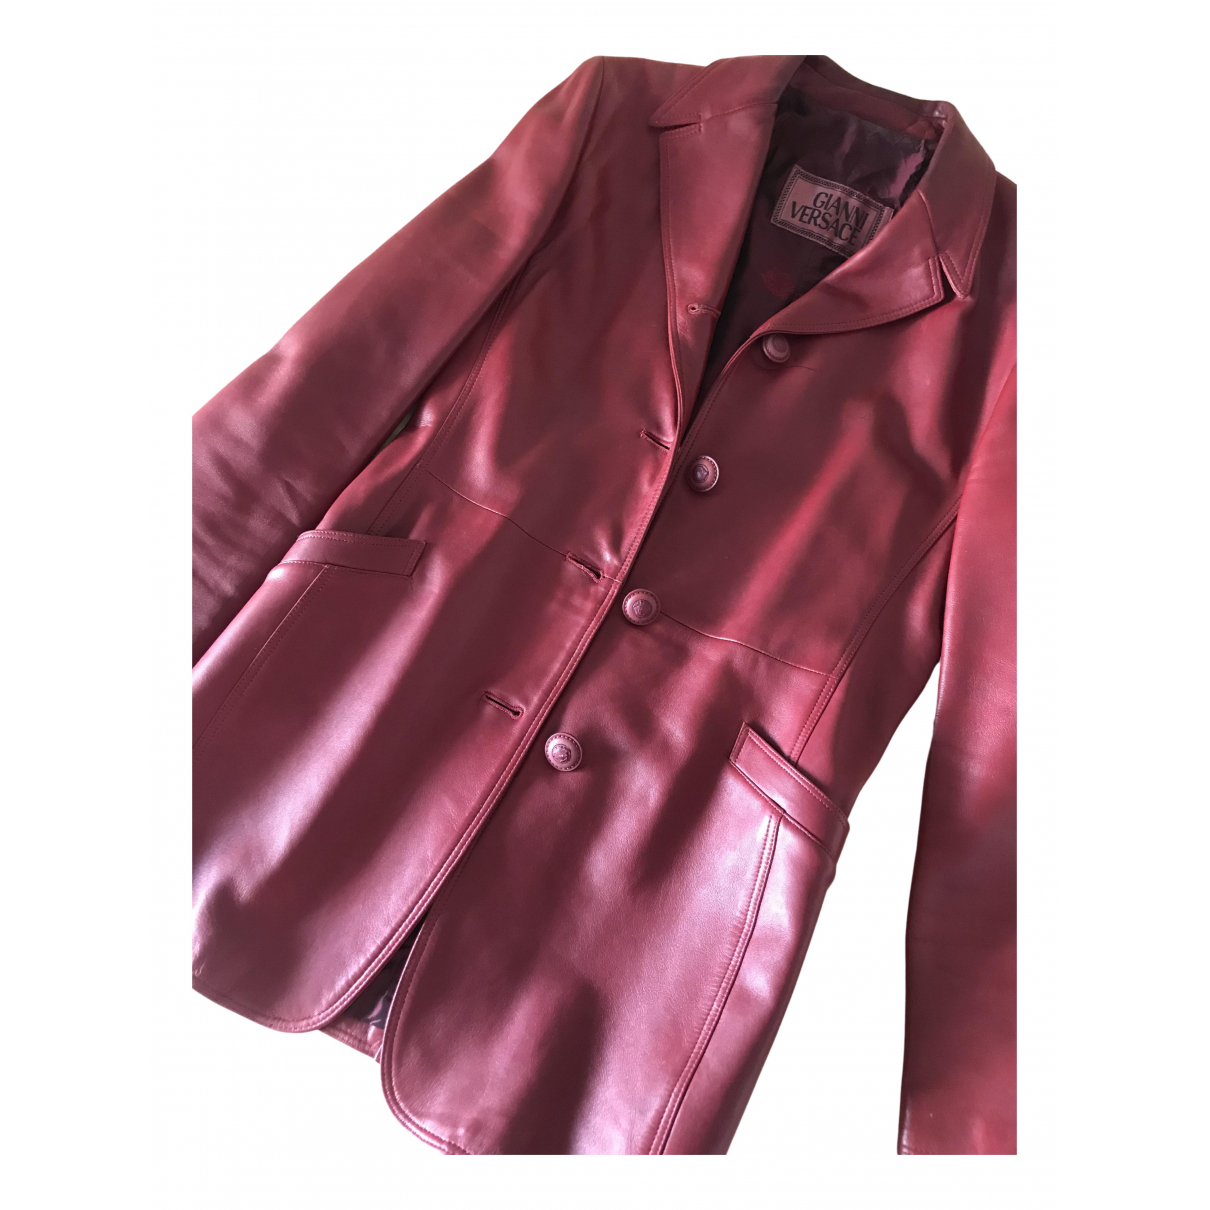 Gianni Versace N Burgundy Leather jacket for Women 42 IT